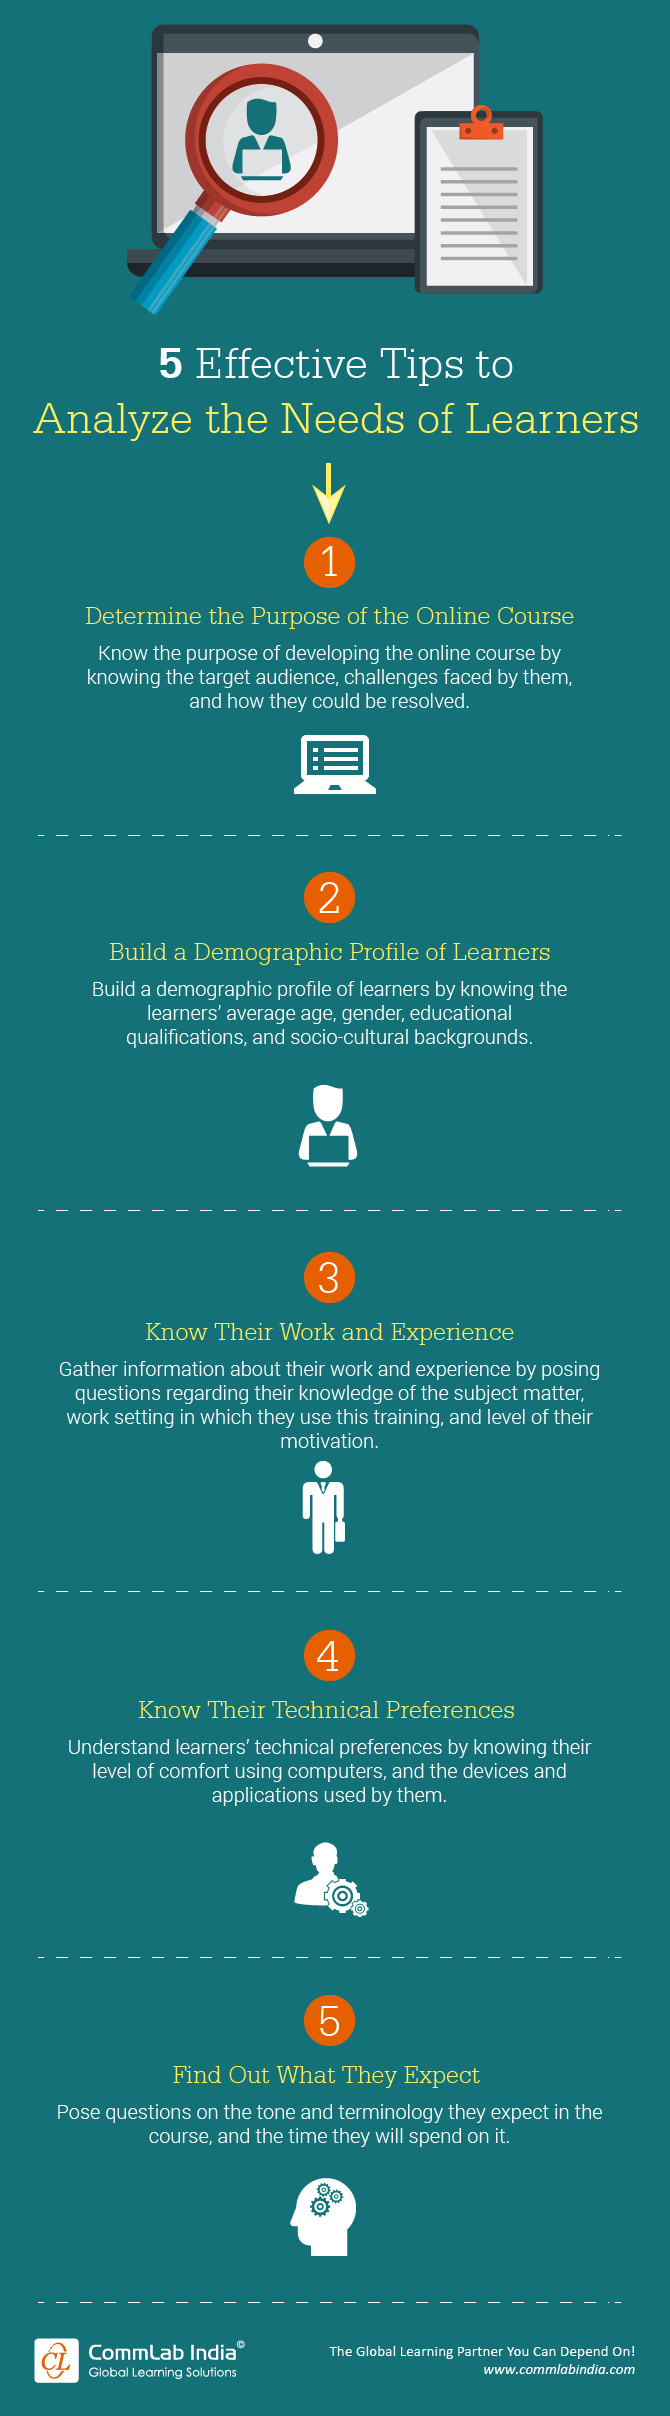 5 Effective Tips to Analyze the Needs of Online Learners [Infographic]